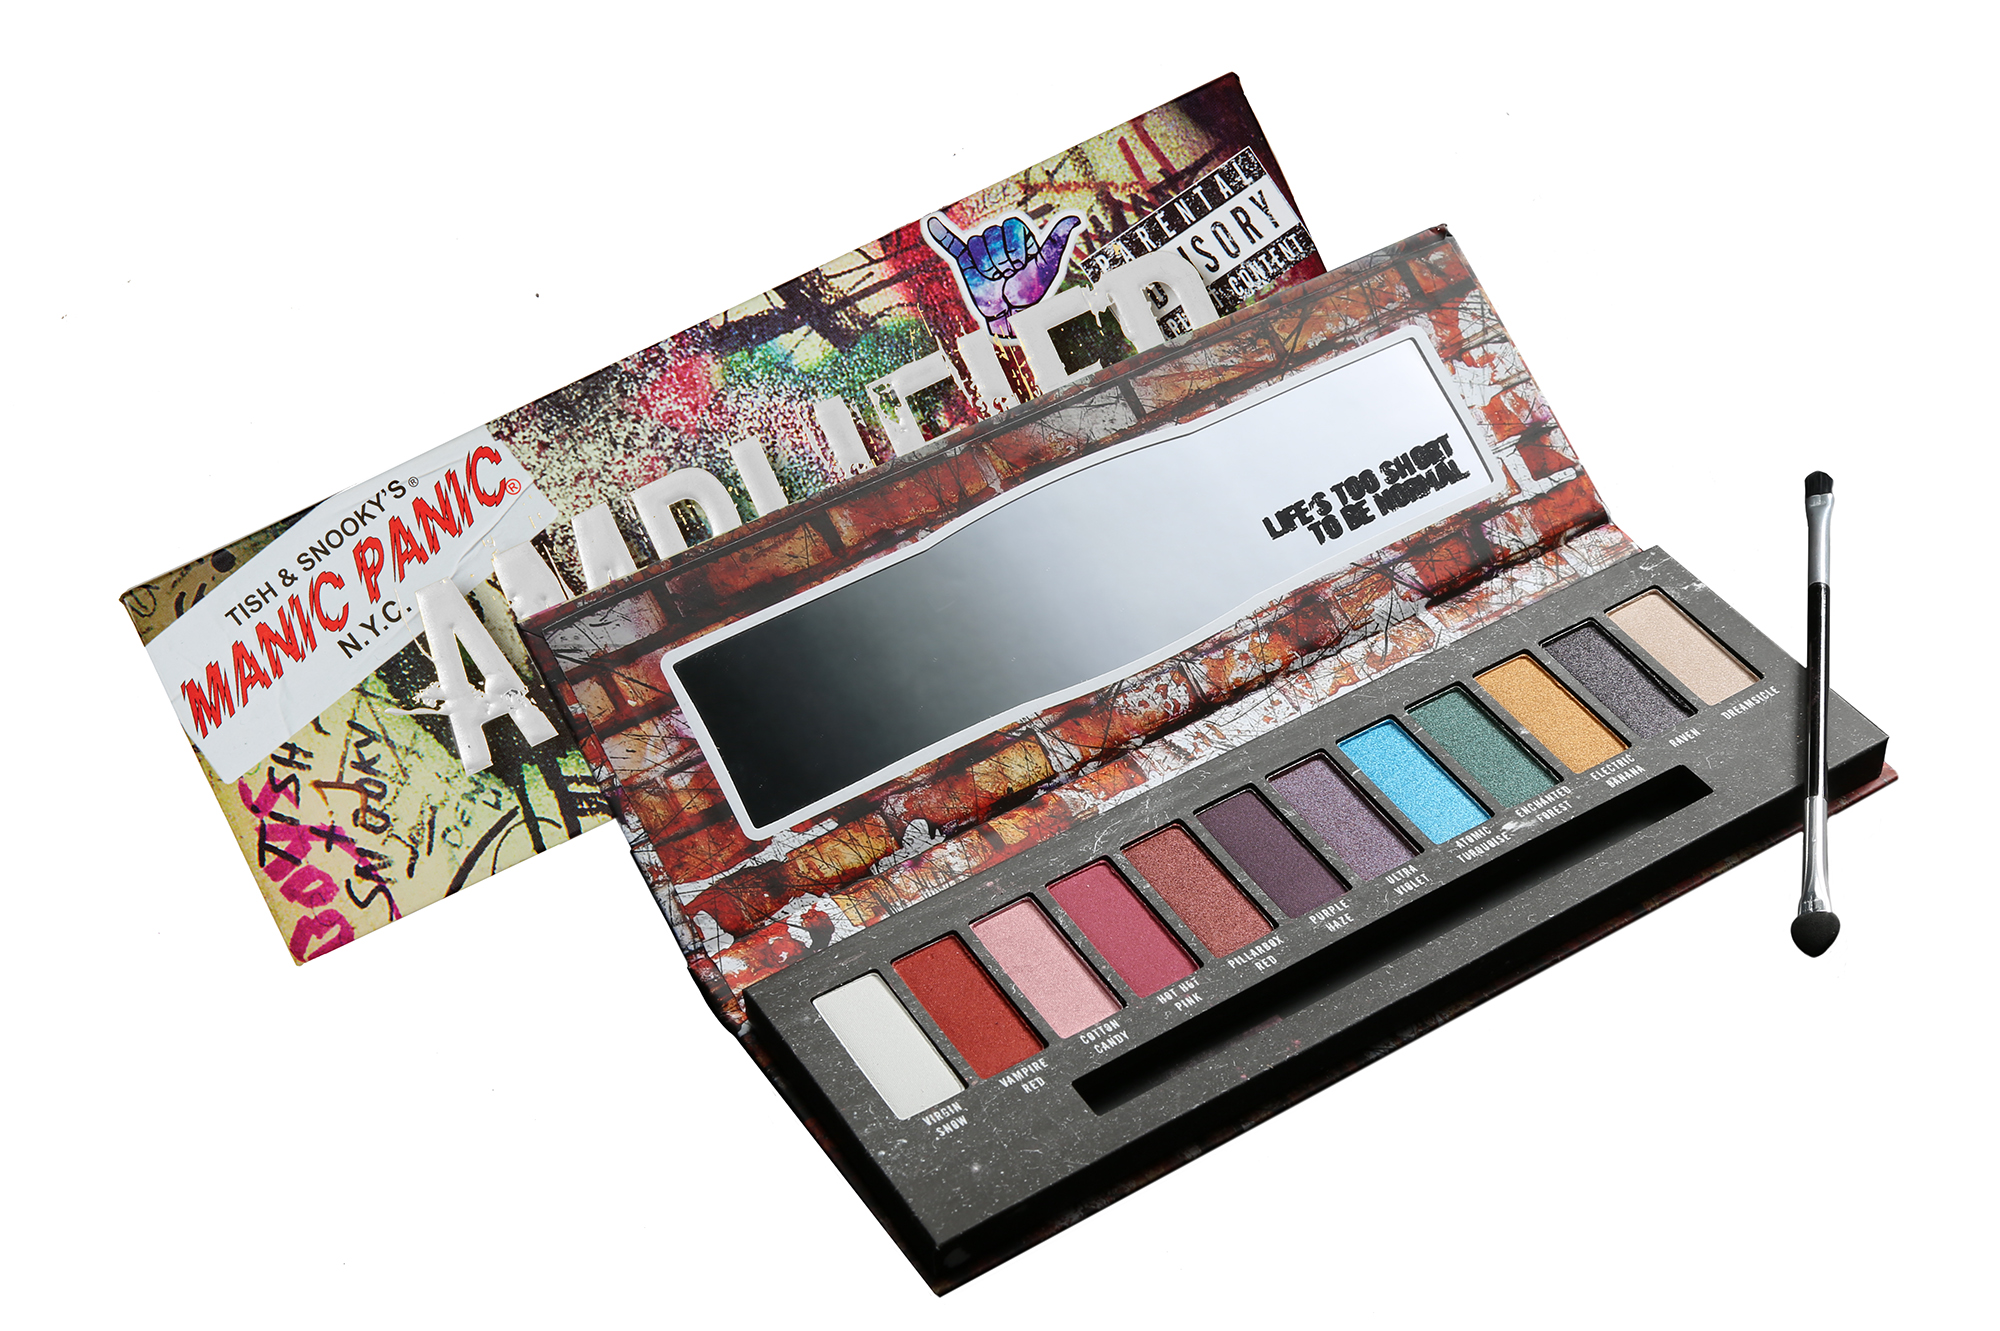 Manic Panic's vibrant eyeshadow palette will remind you of its colorful hair dyes